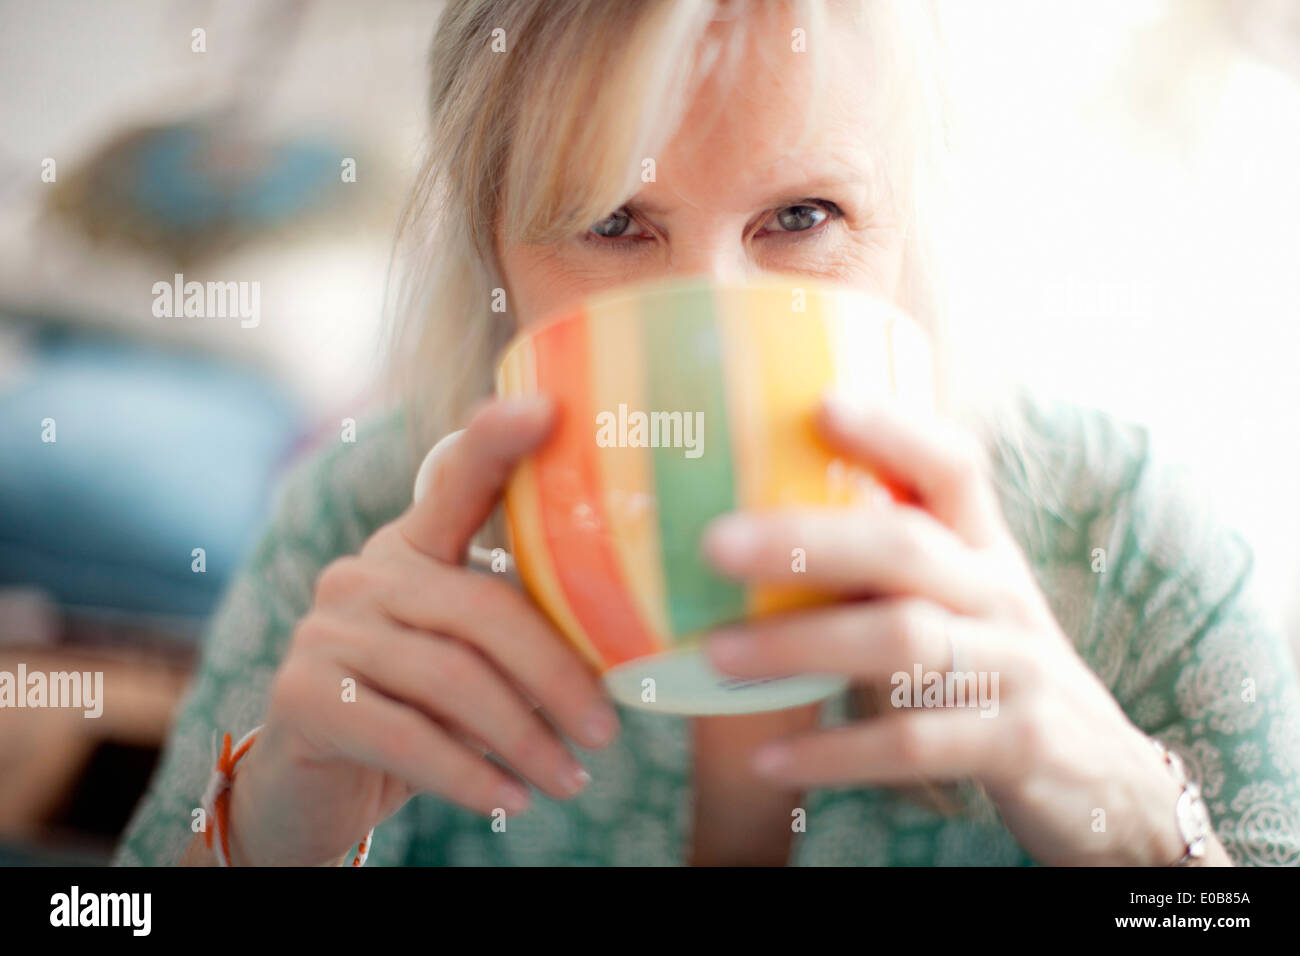 Close up of mature woman drinking coffee - Stock Image